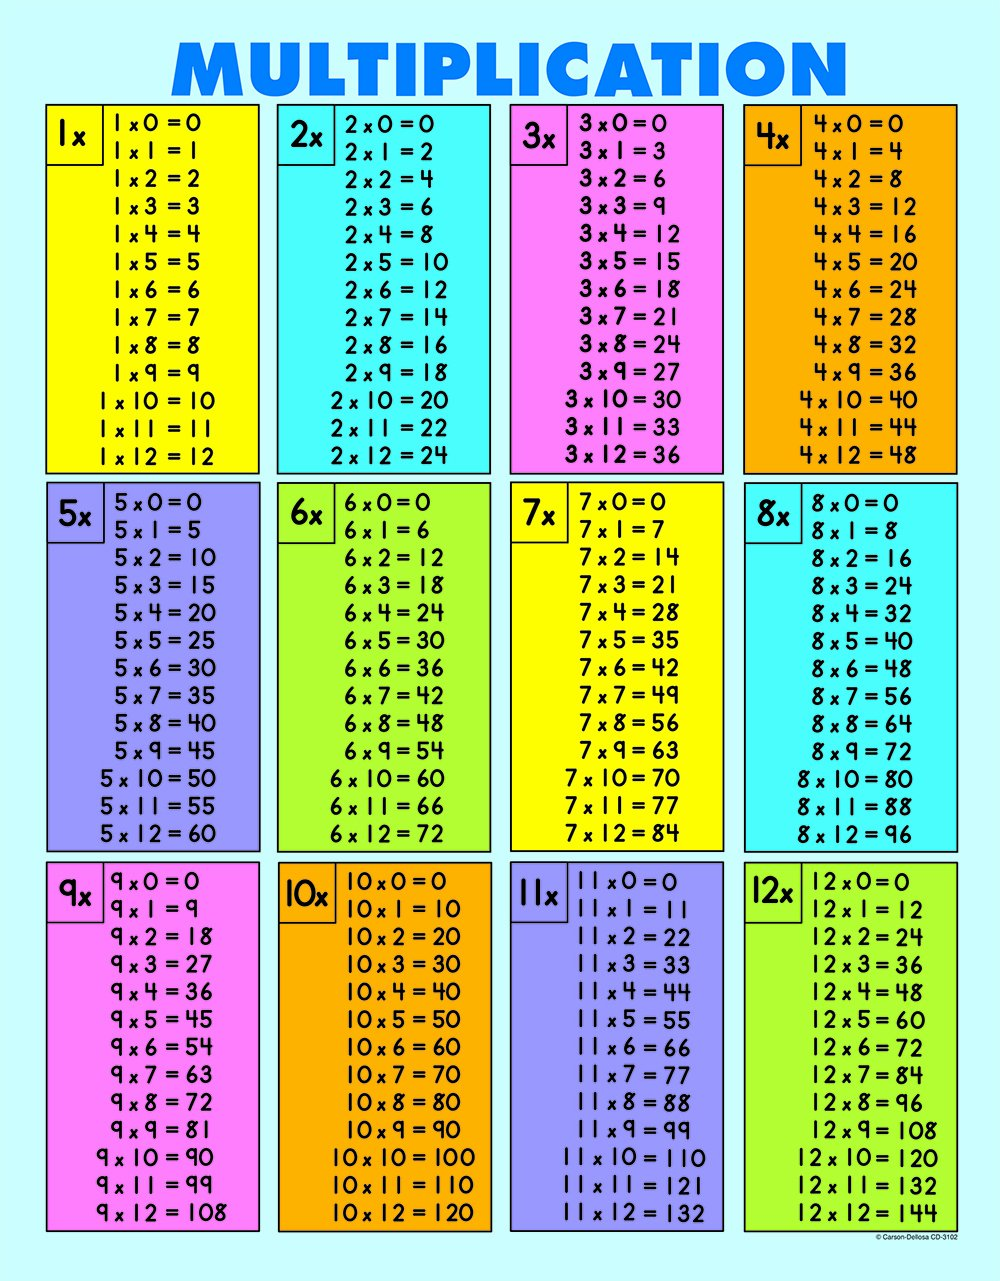 Carson Dellosa Multiplication Tables All Facts To 12